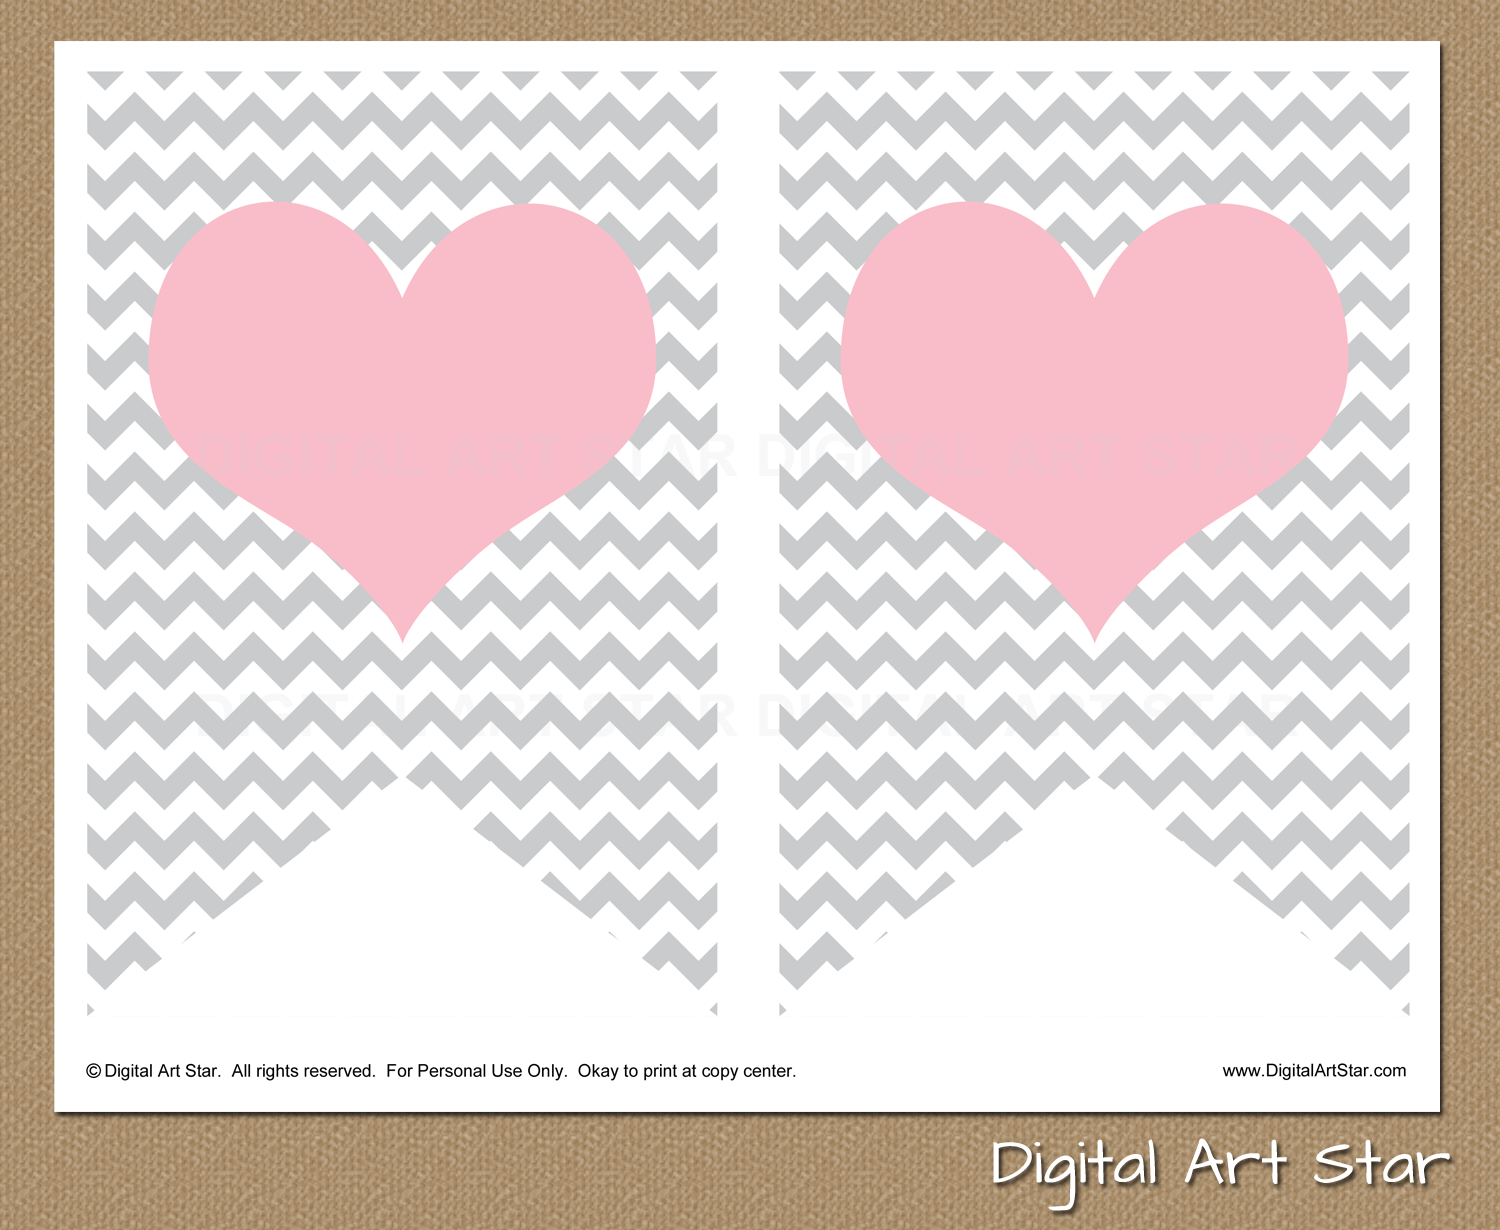 Digital art star printable party decor diy printable it for Baby shower decoration templates